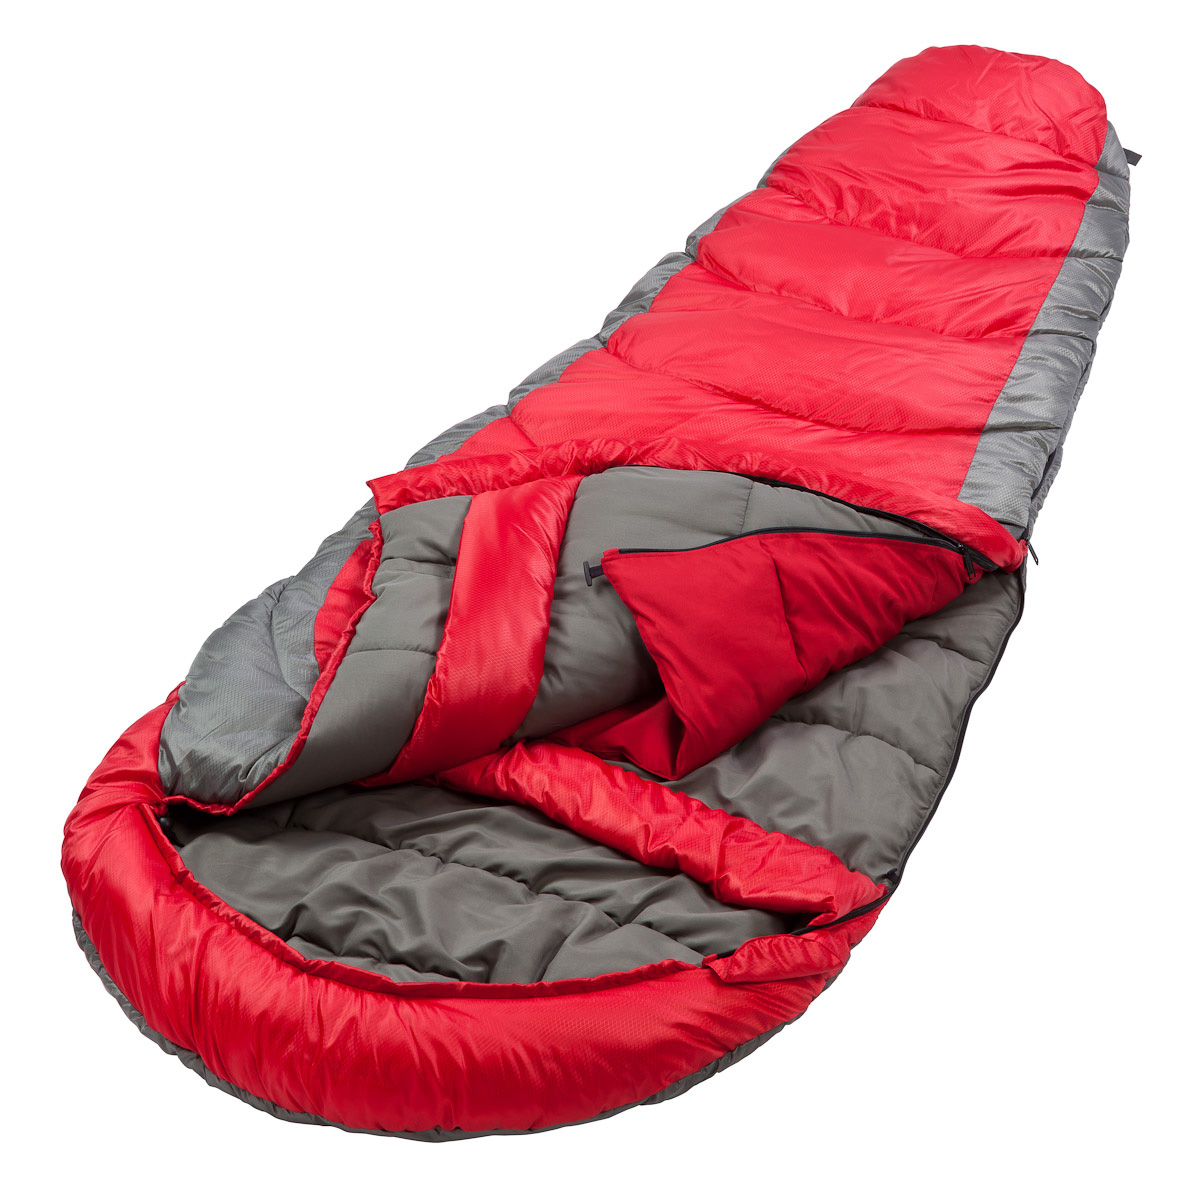 Studio hero product photo of Coleman mummy sleeping bag for product packaging, print collateral, and advertising